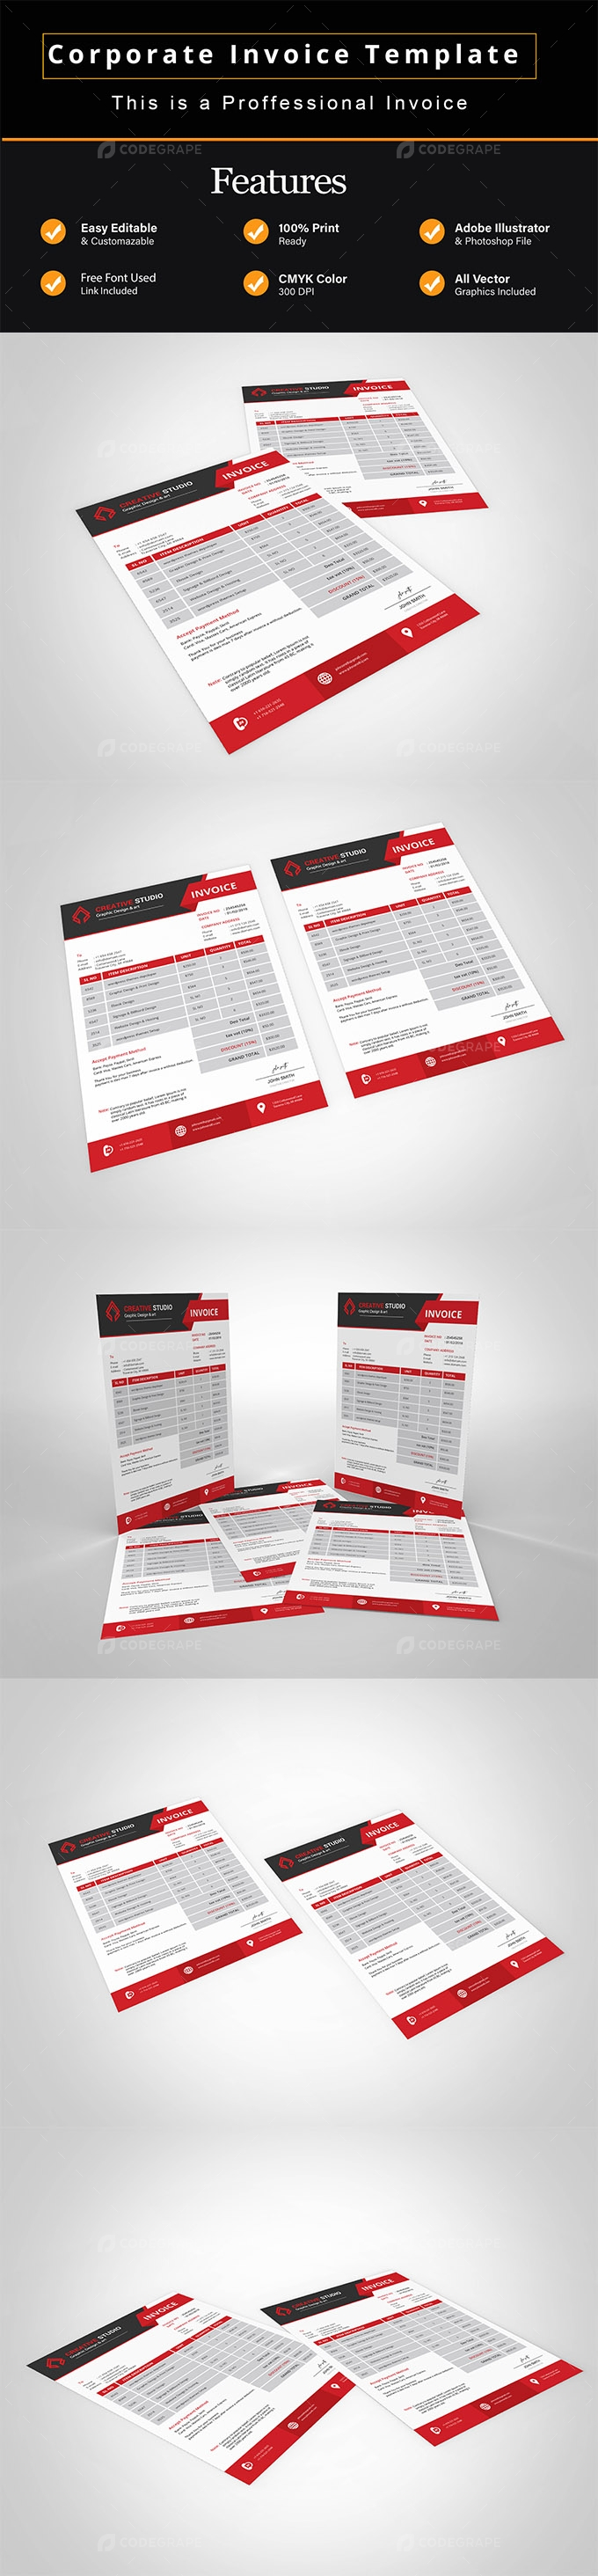 Corporate Invoice Template